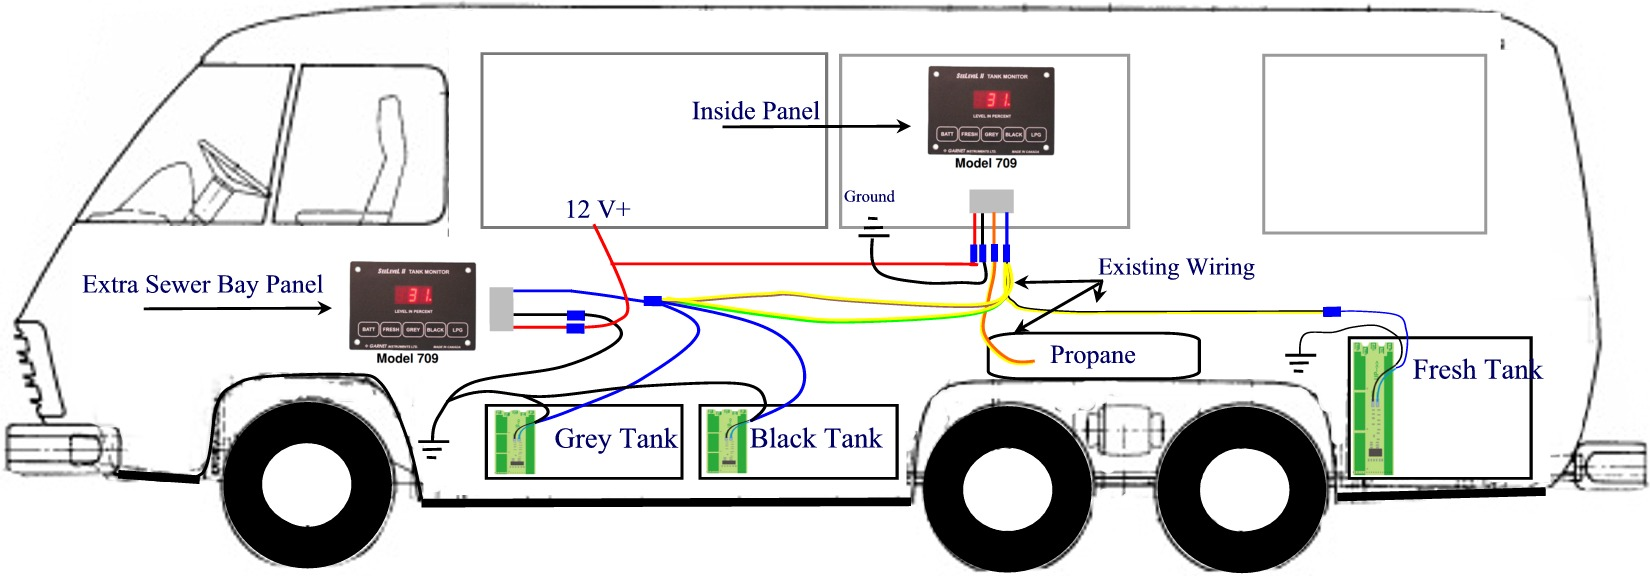 rv volt wiring diagram images rv tank monitor wiring diagram lzk gallery